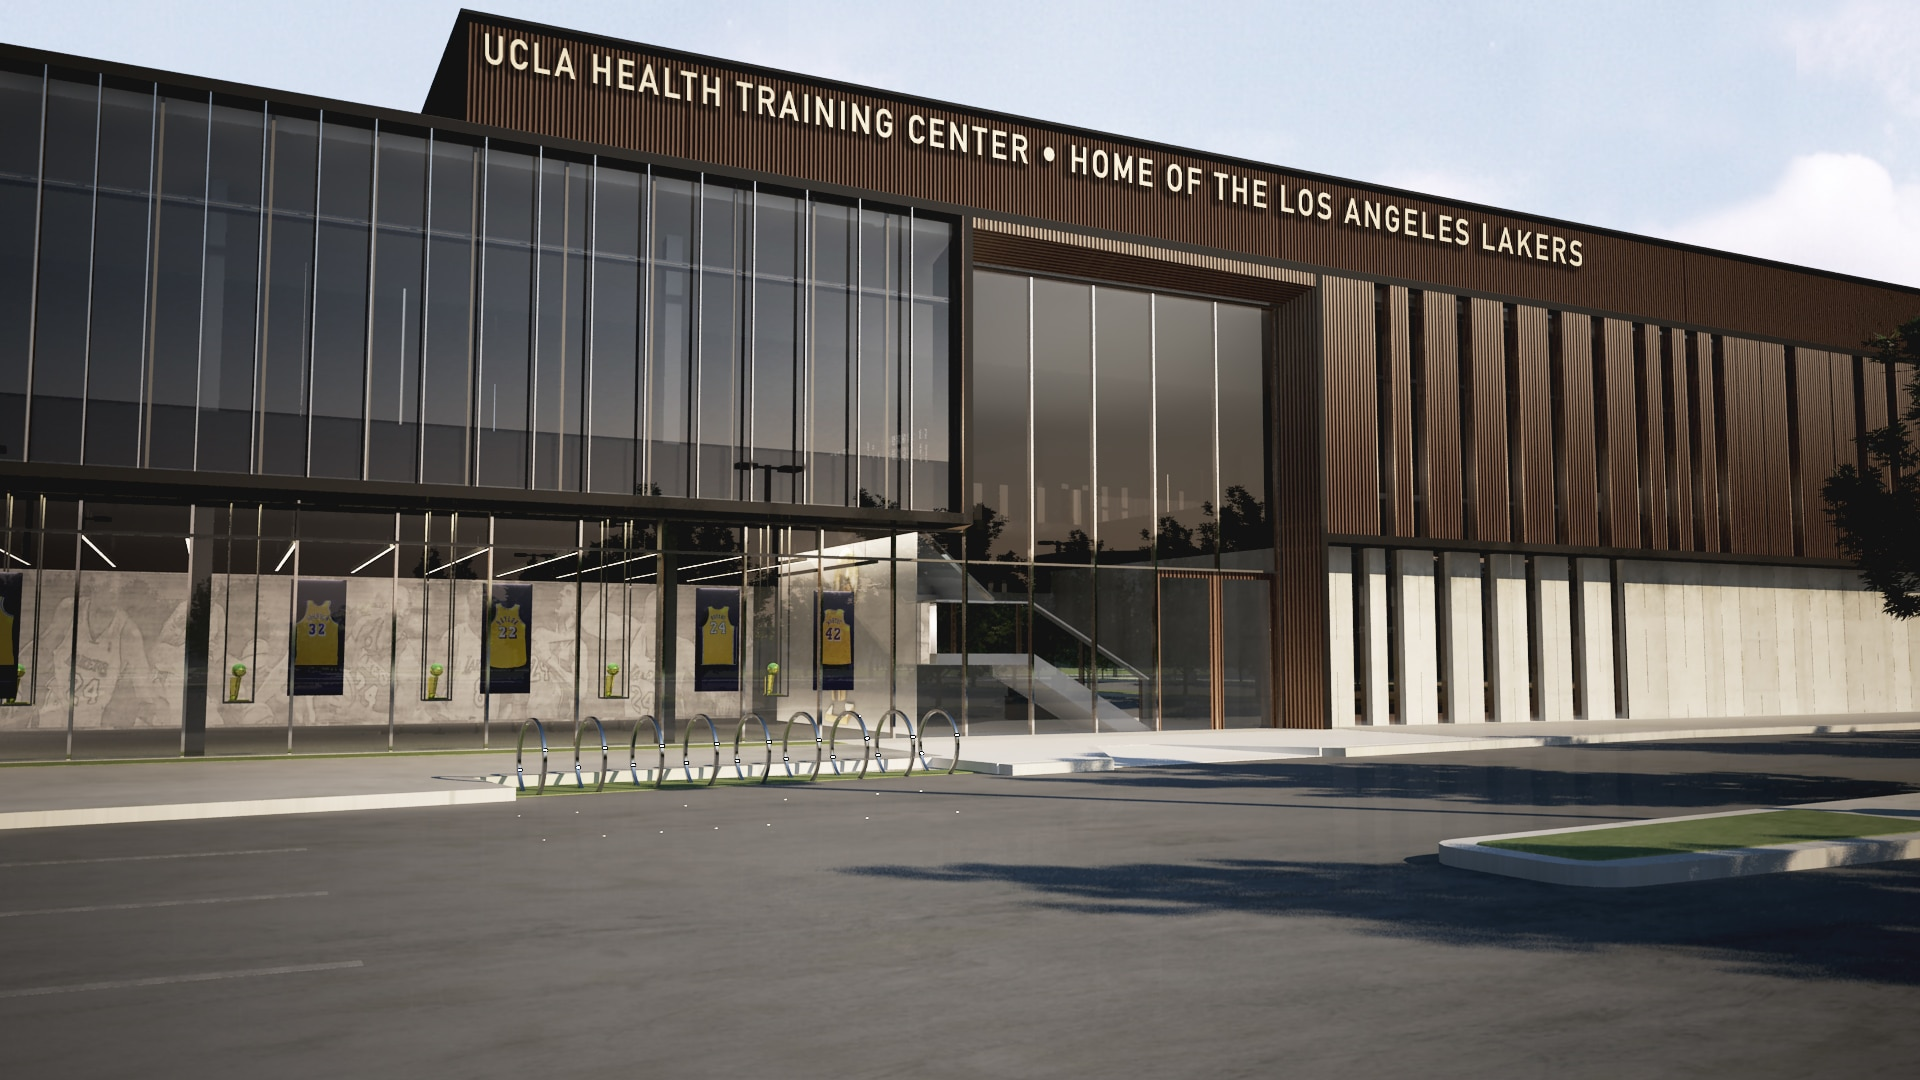 Ucla Health Training Center Gallery Los Angeles Lakers